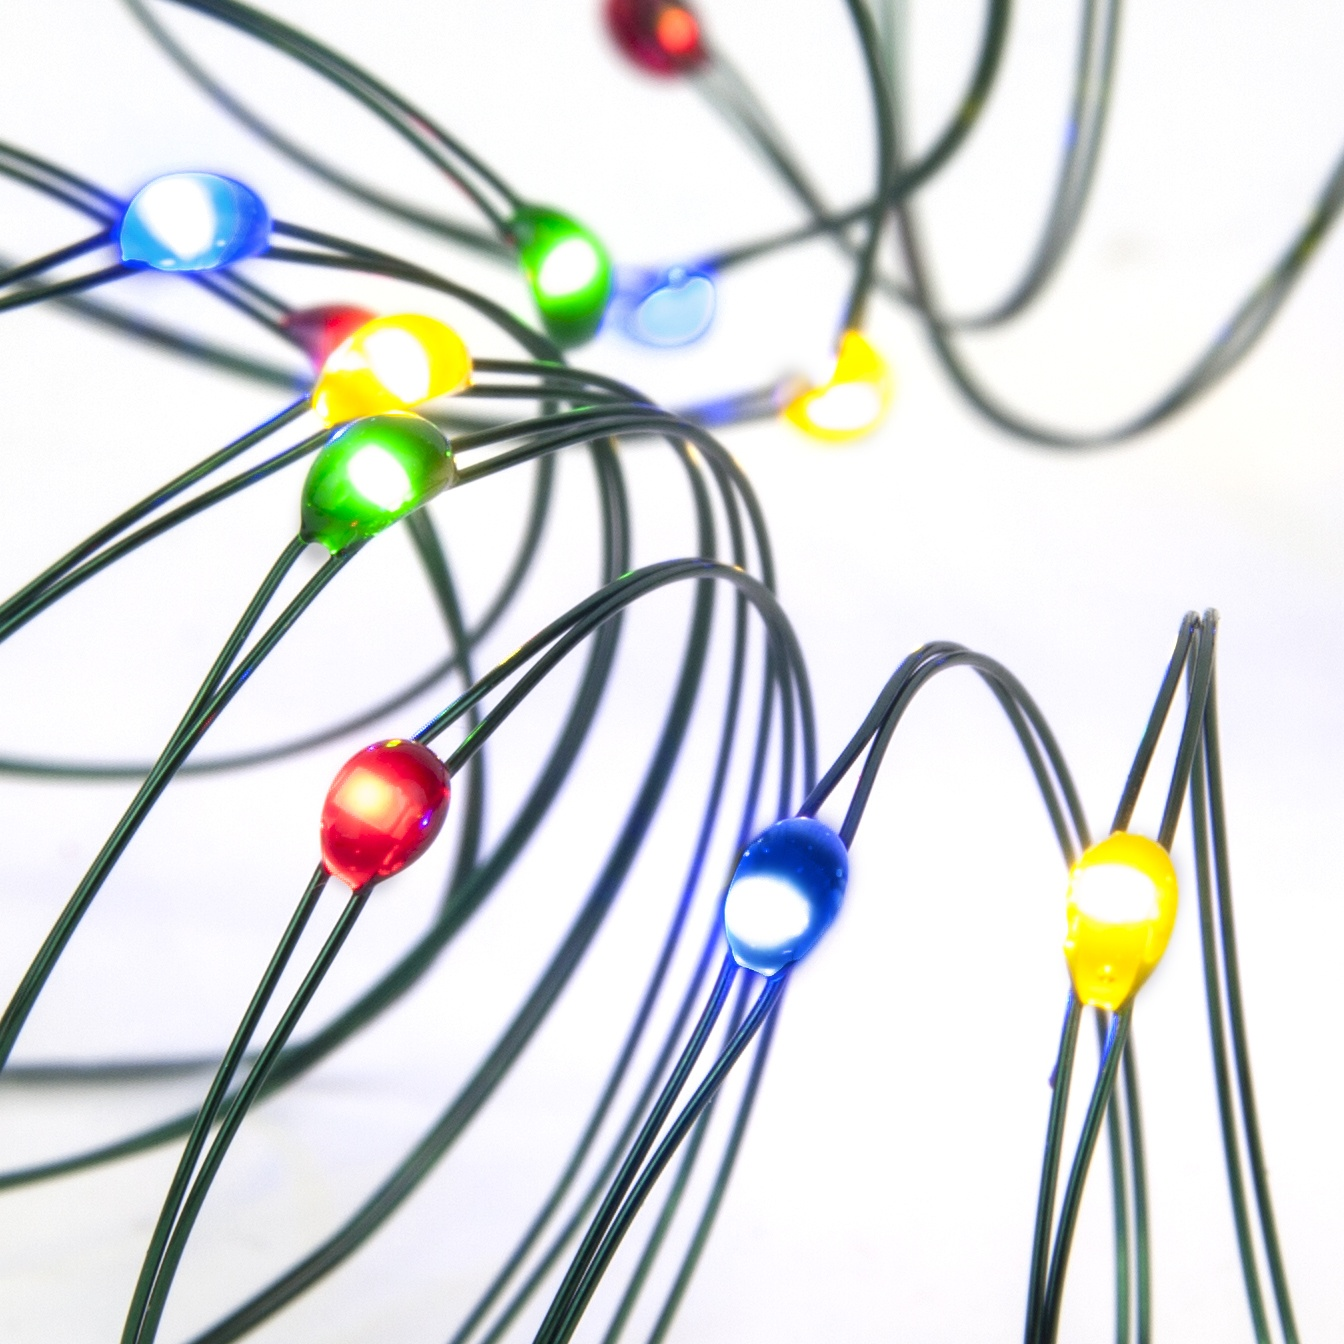 LED Multicolored Fairy Lights Battery Operated Ultra Thin Wire